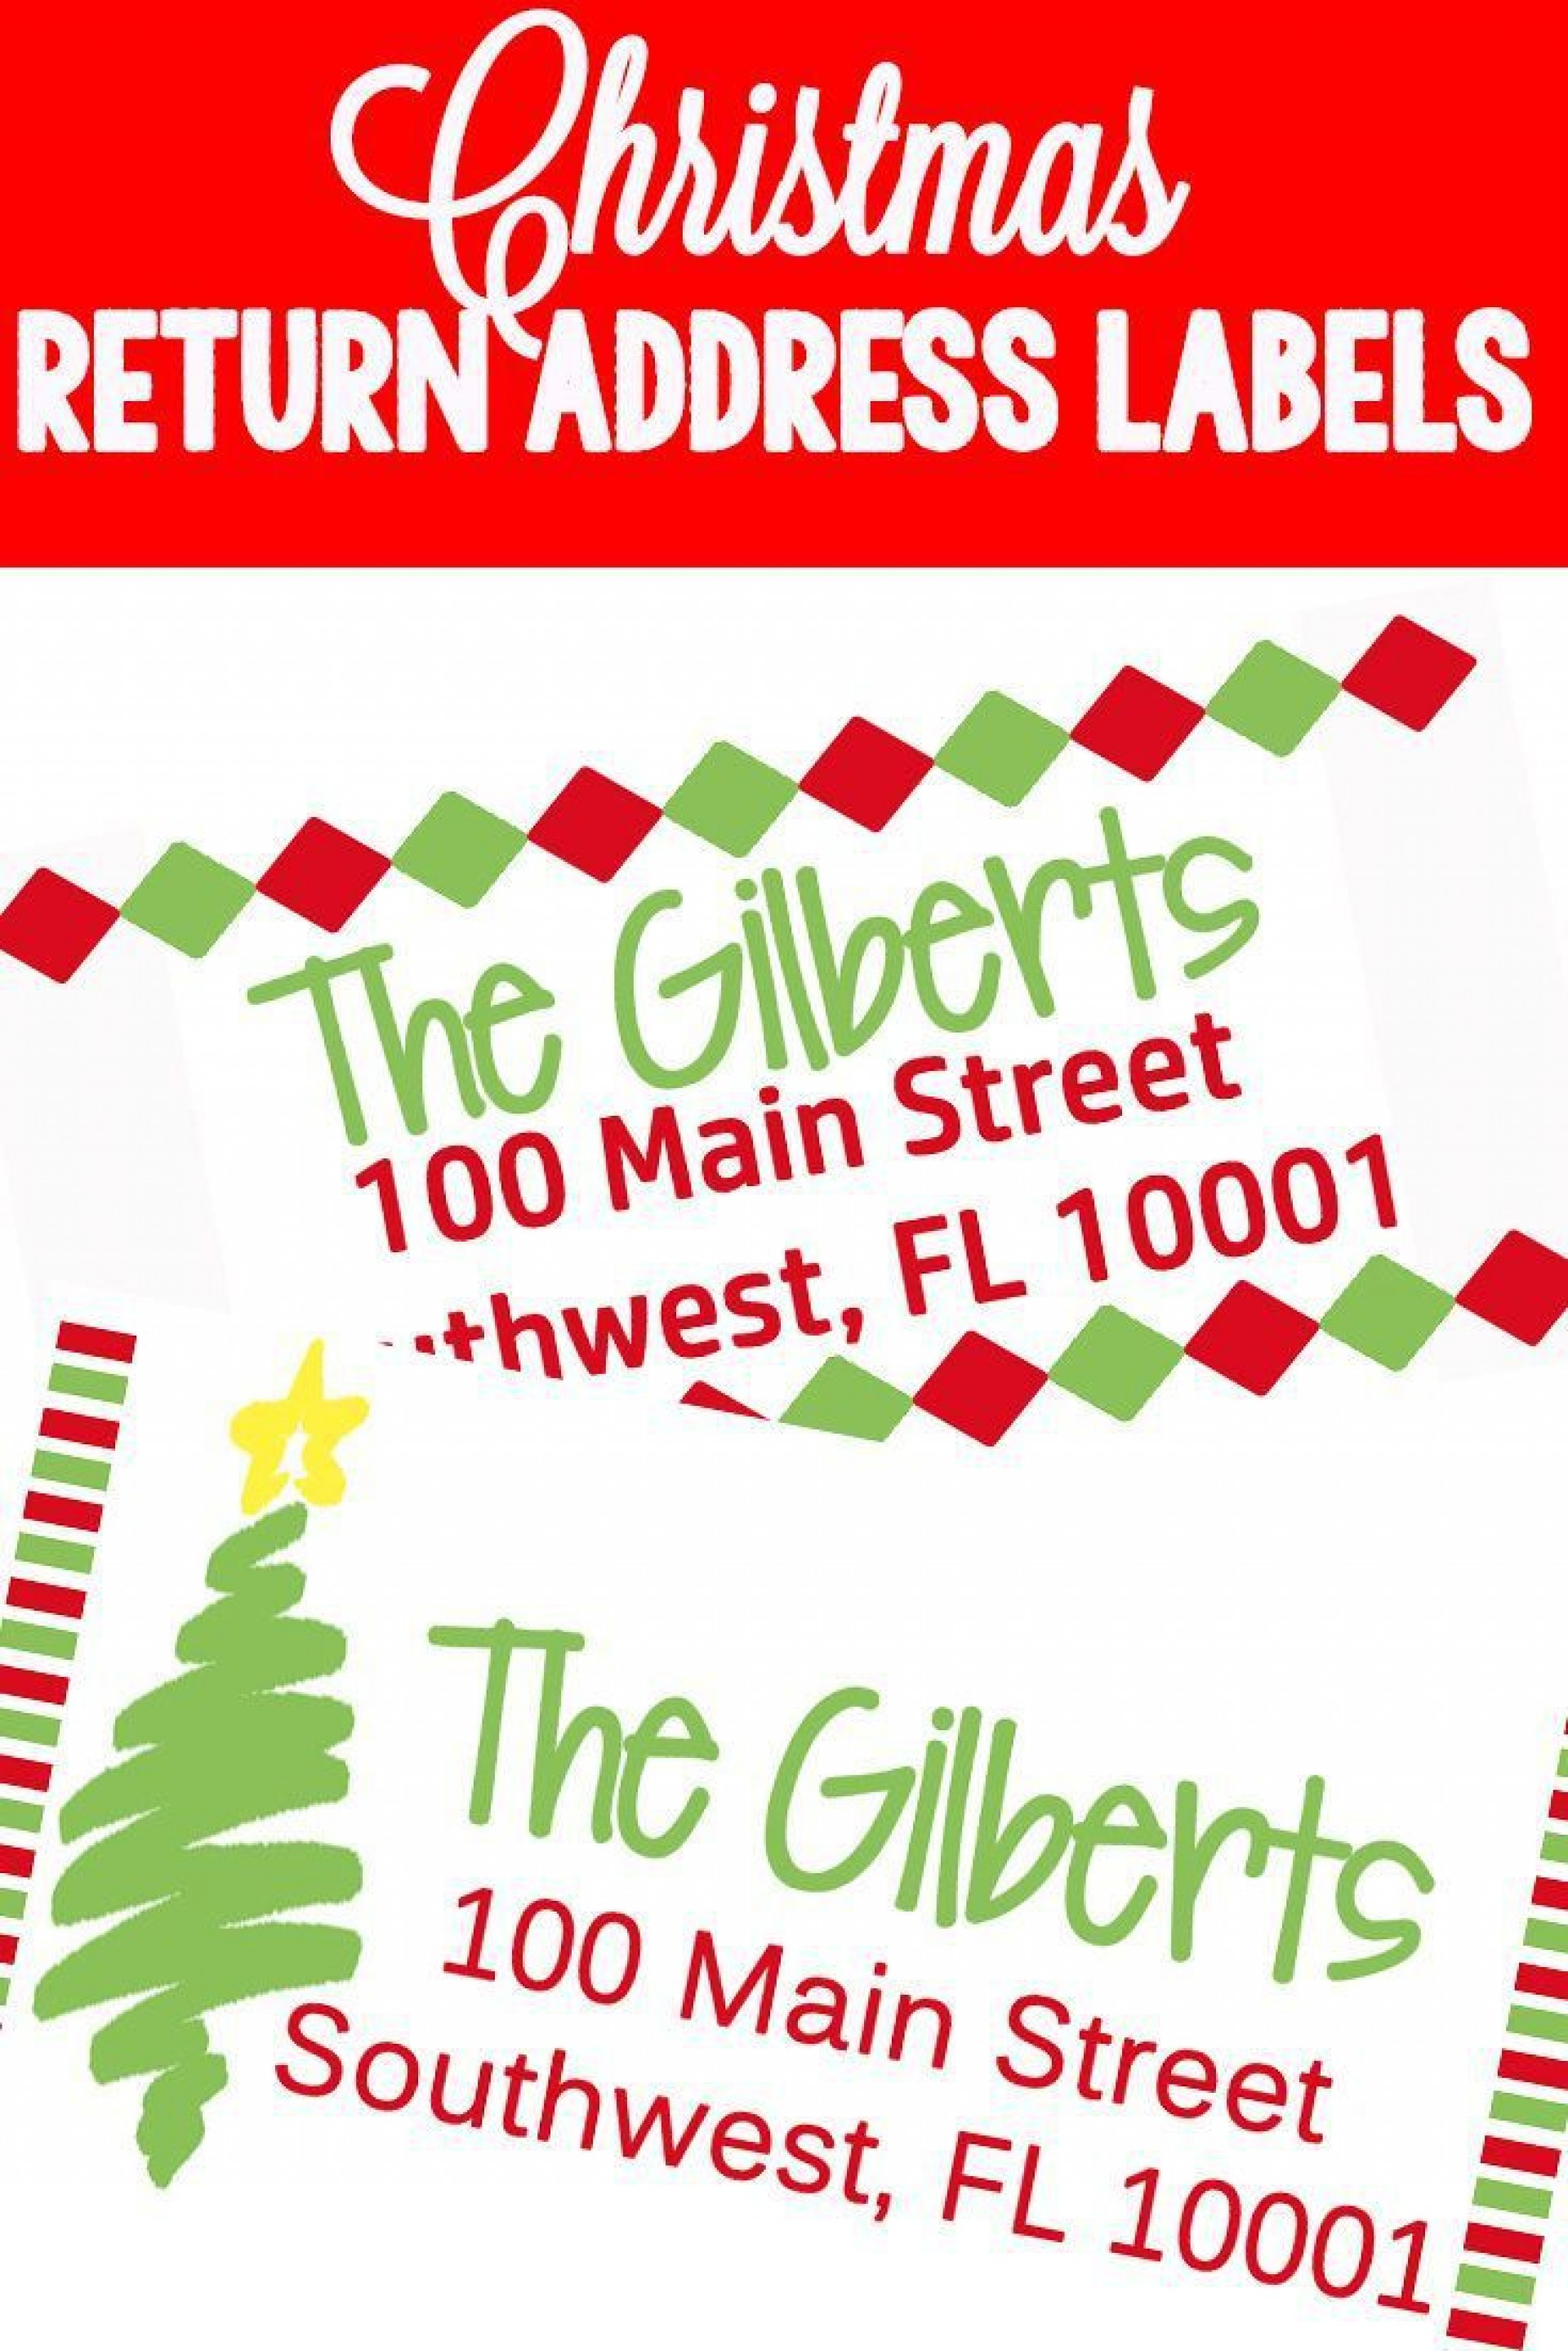 009 Phenomenal Christma Mailing Label Template High Resolution  Addres Free Download Return1920